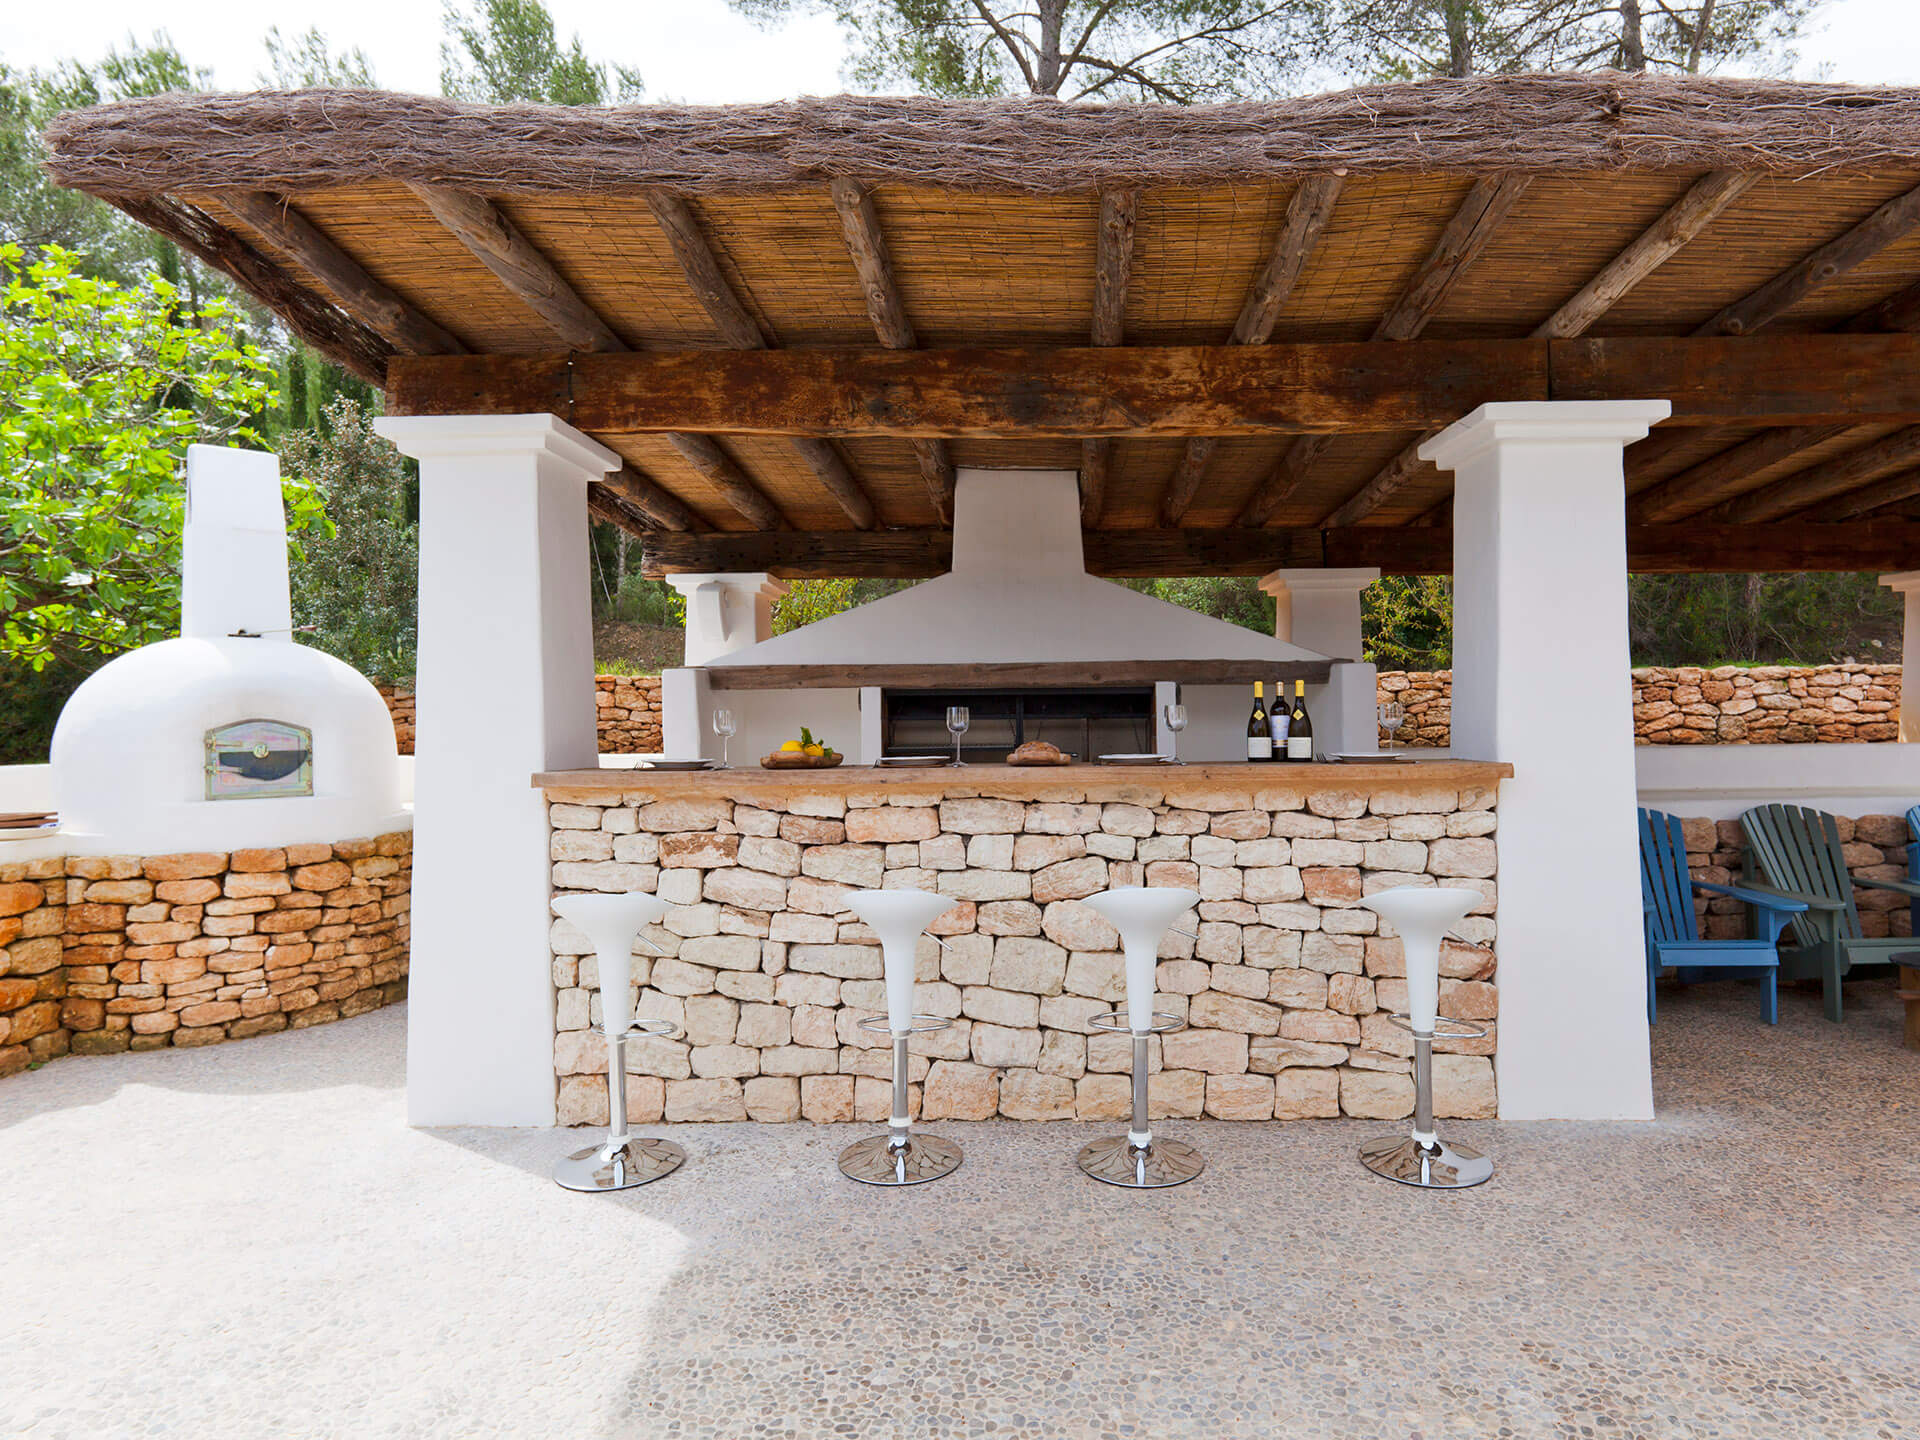 Ibiza - Outside kitchen - Wide Shot